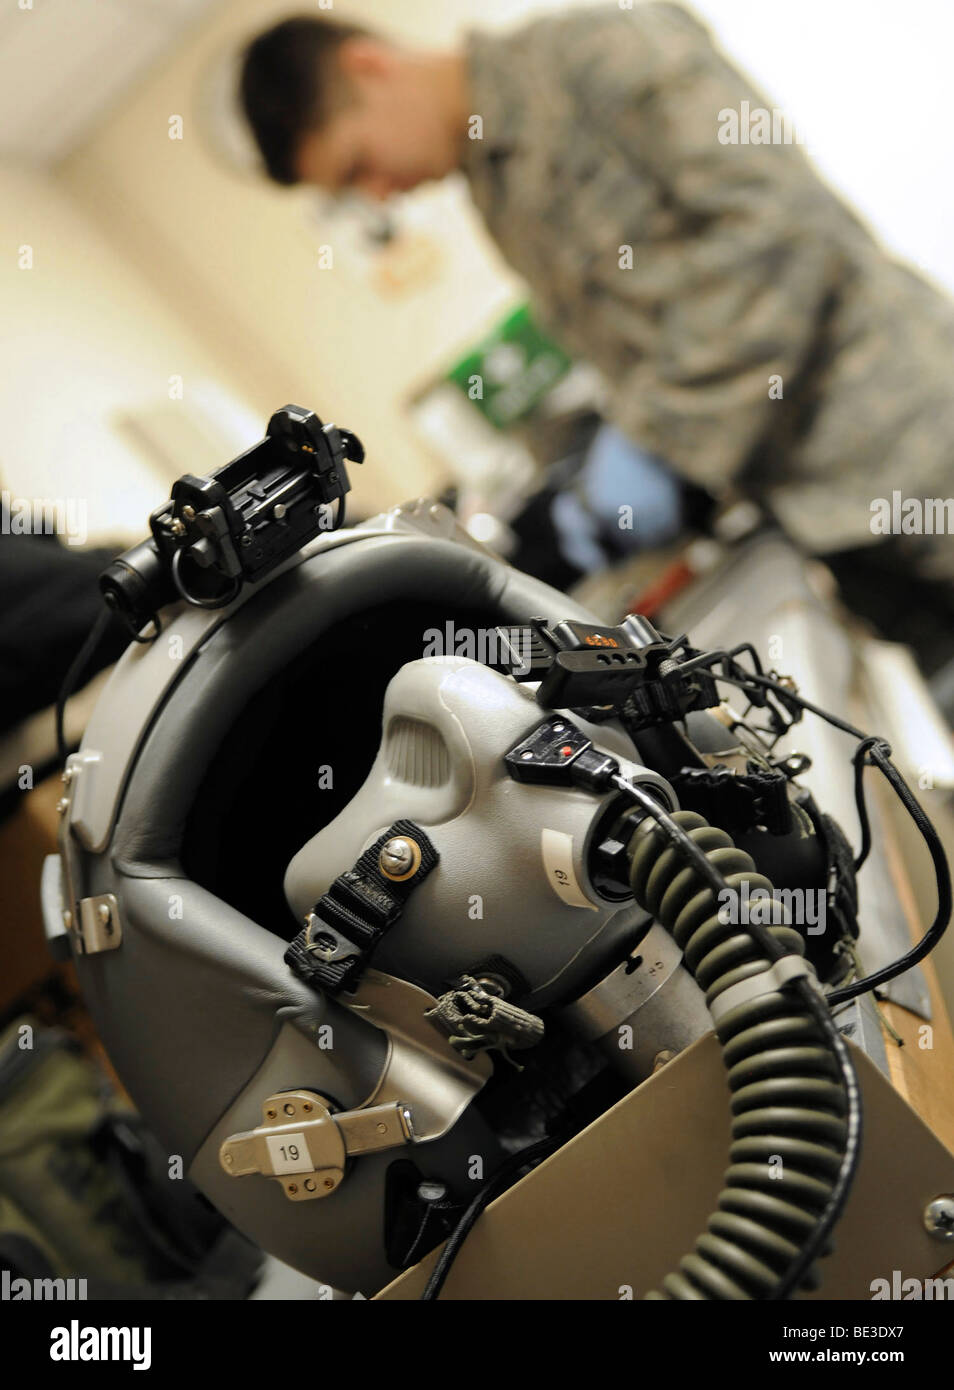 April 21, 2009 - A fully assembled flight crew helmet sits after being inspected by an Airman. - Stock Image